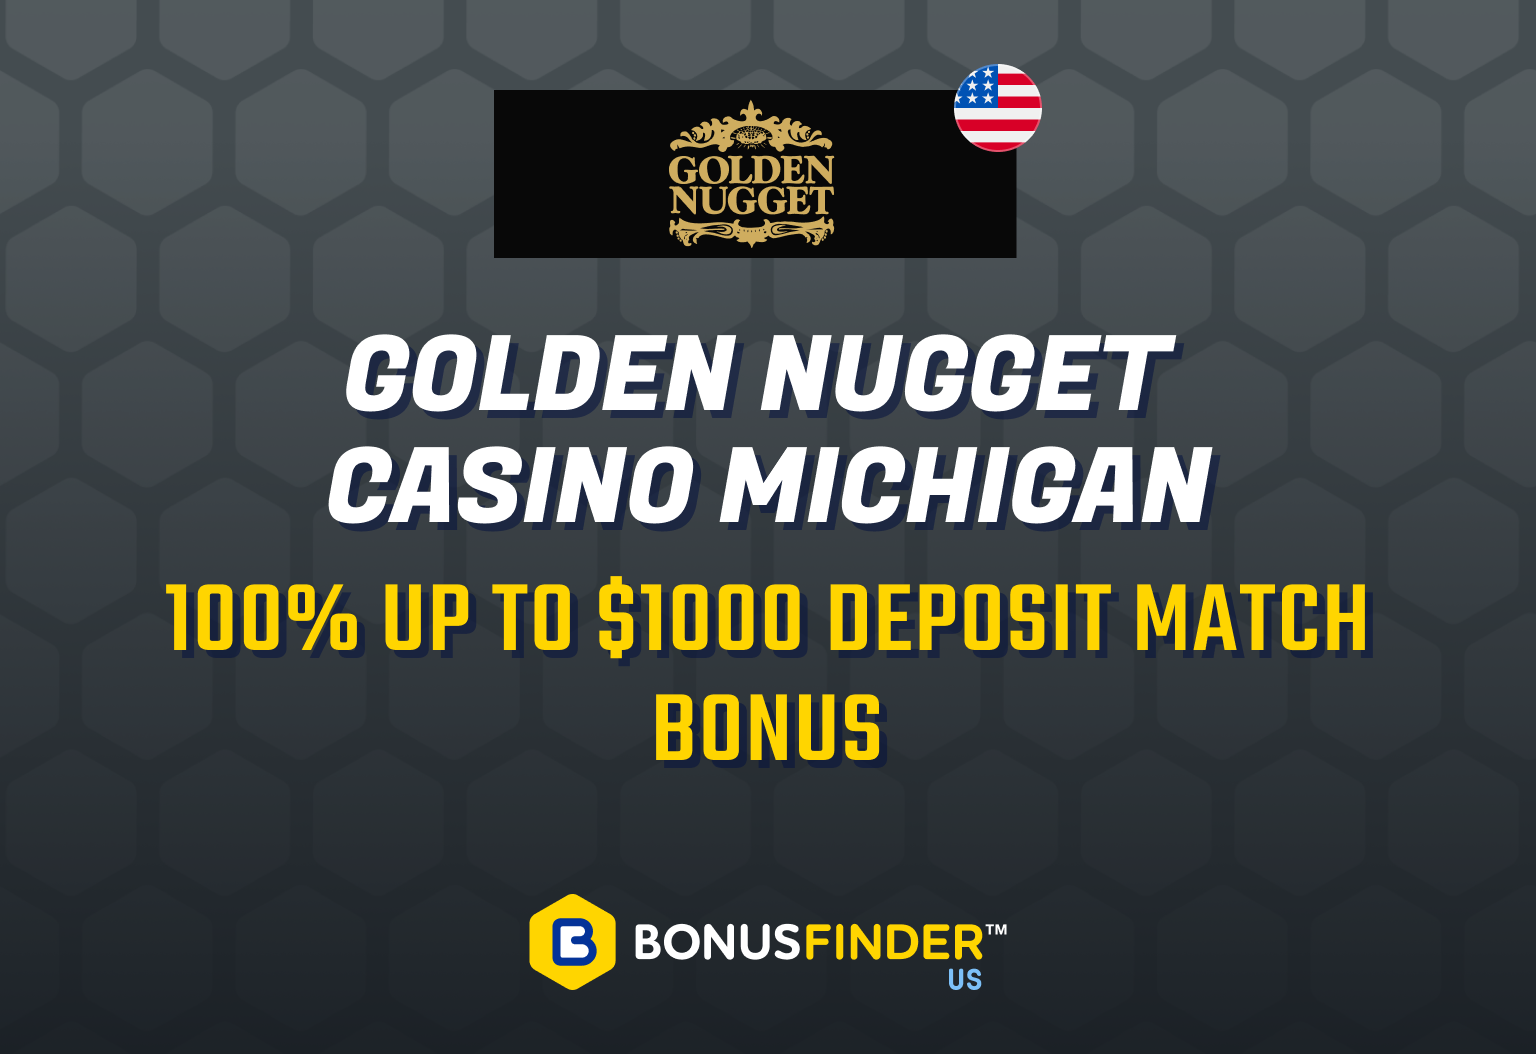 Golden Nugget Casino Michigan bonus code